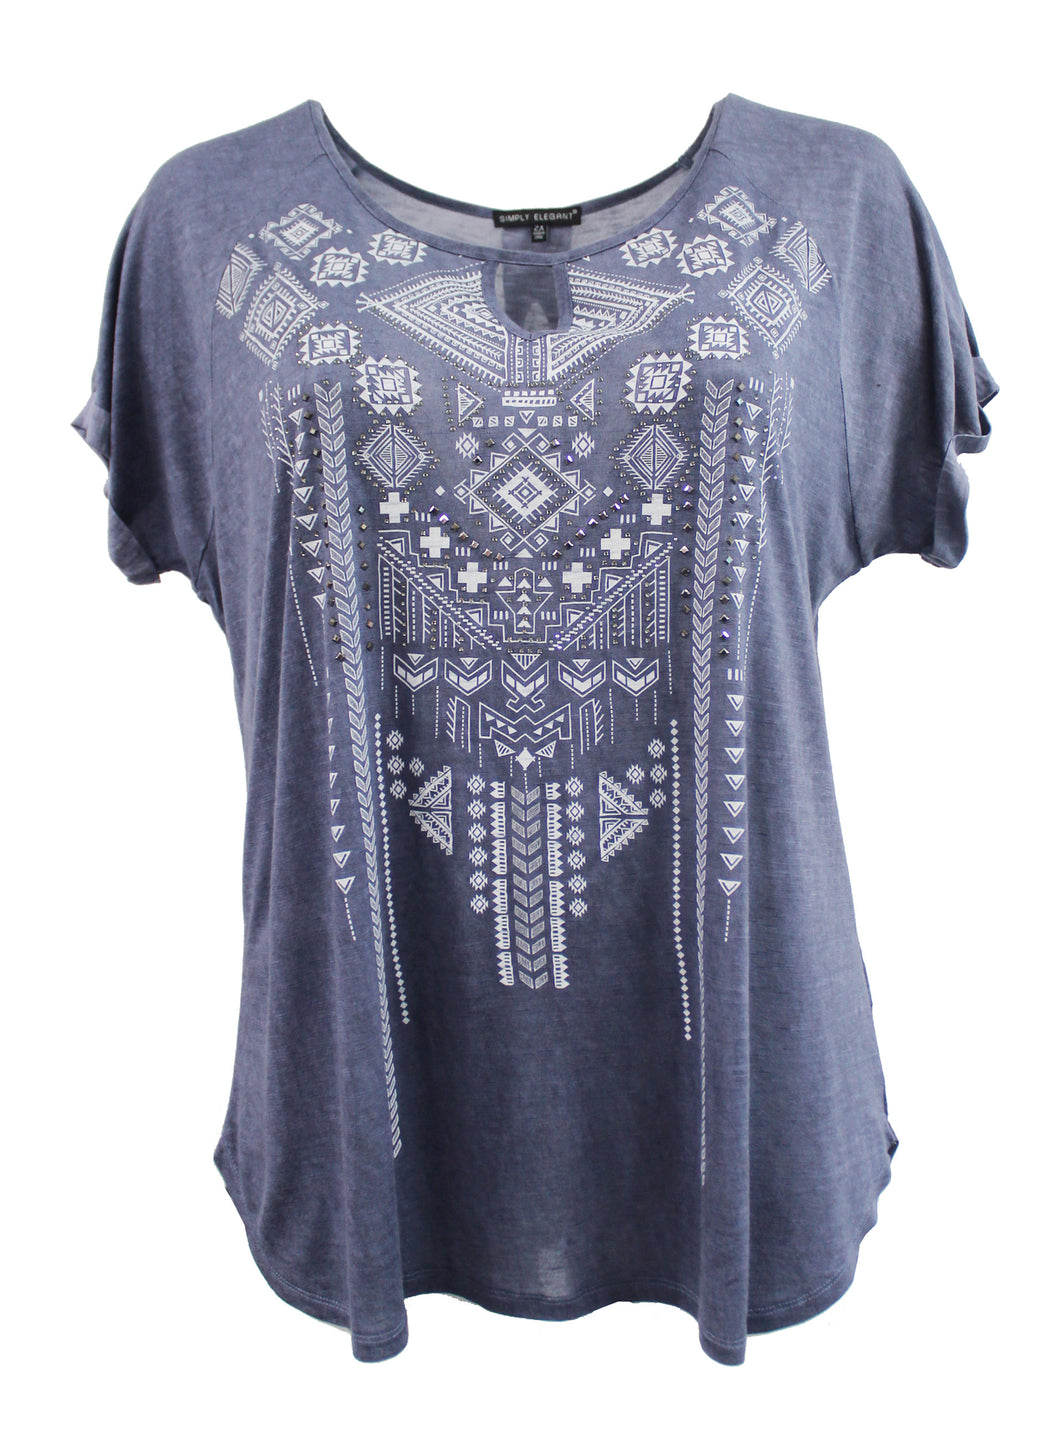 Burnout Tee with Tribal Aztec Print and Rhinestones